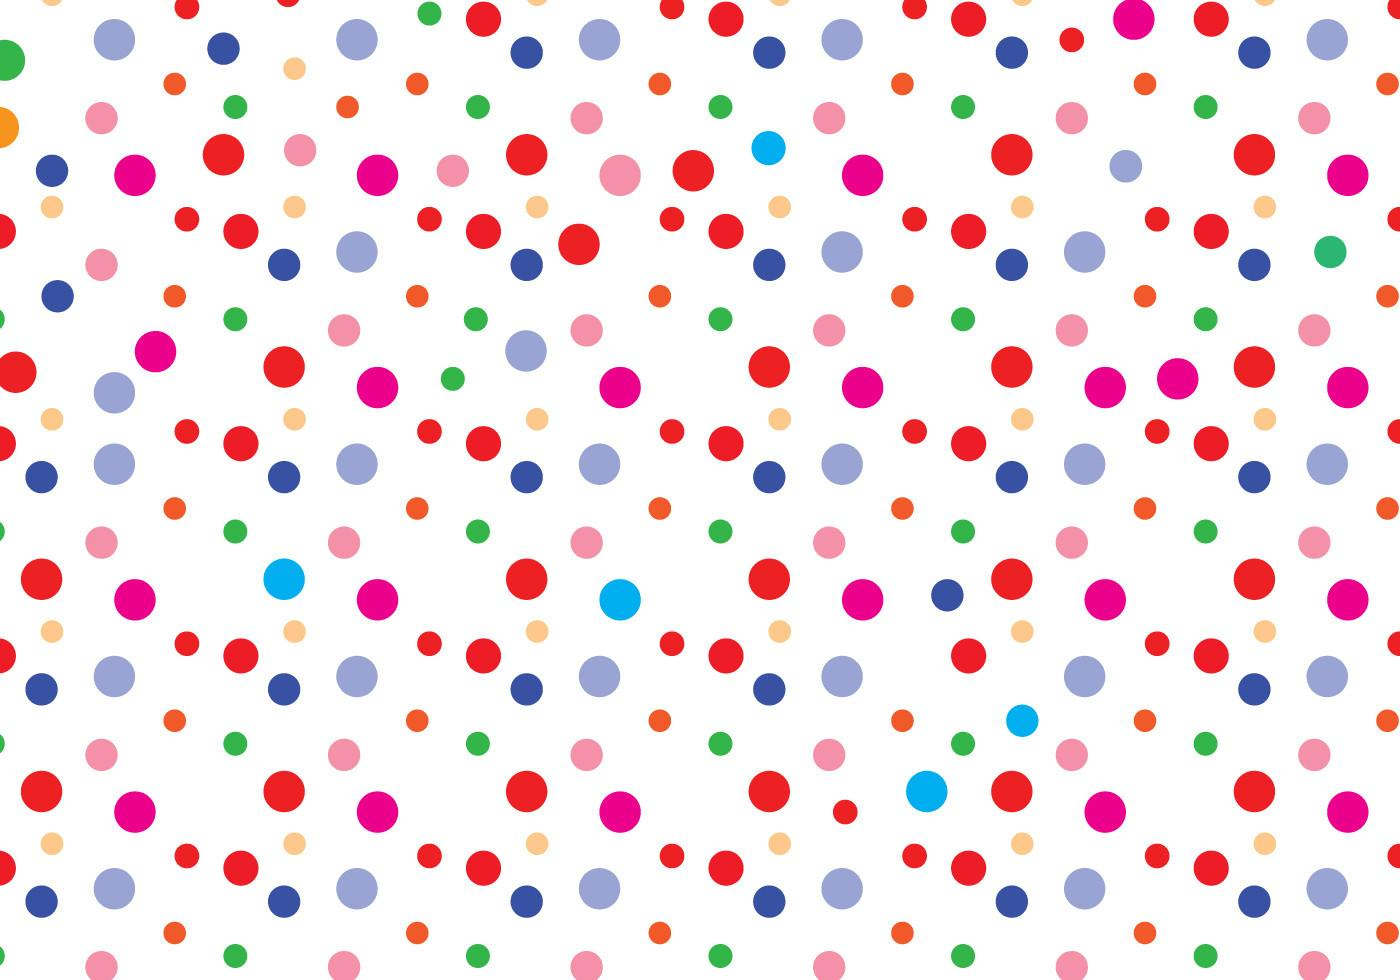 Polka Dot Cliparts